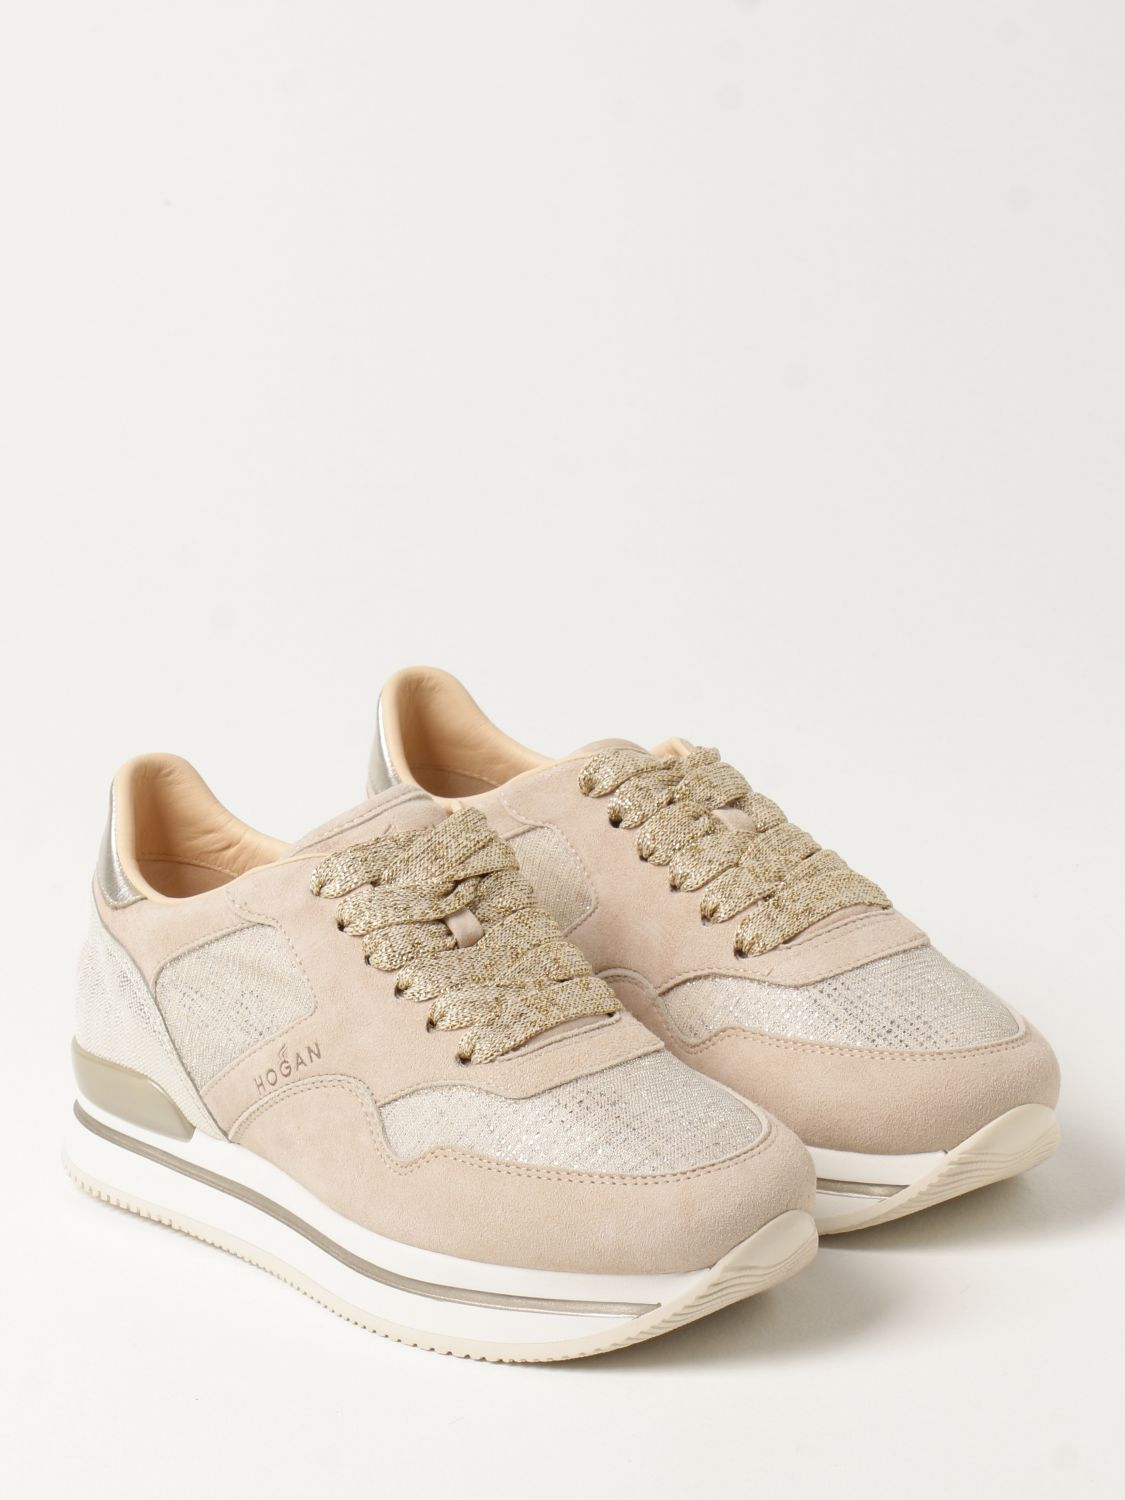 Hogan platform H222 sneakers in suede and lurex fabric